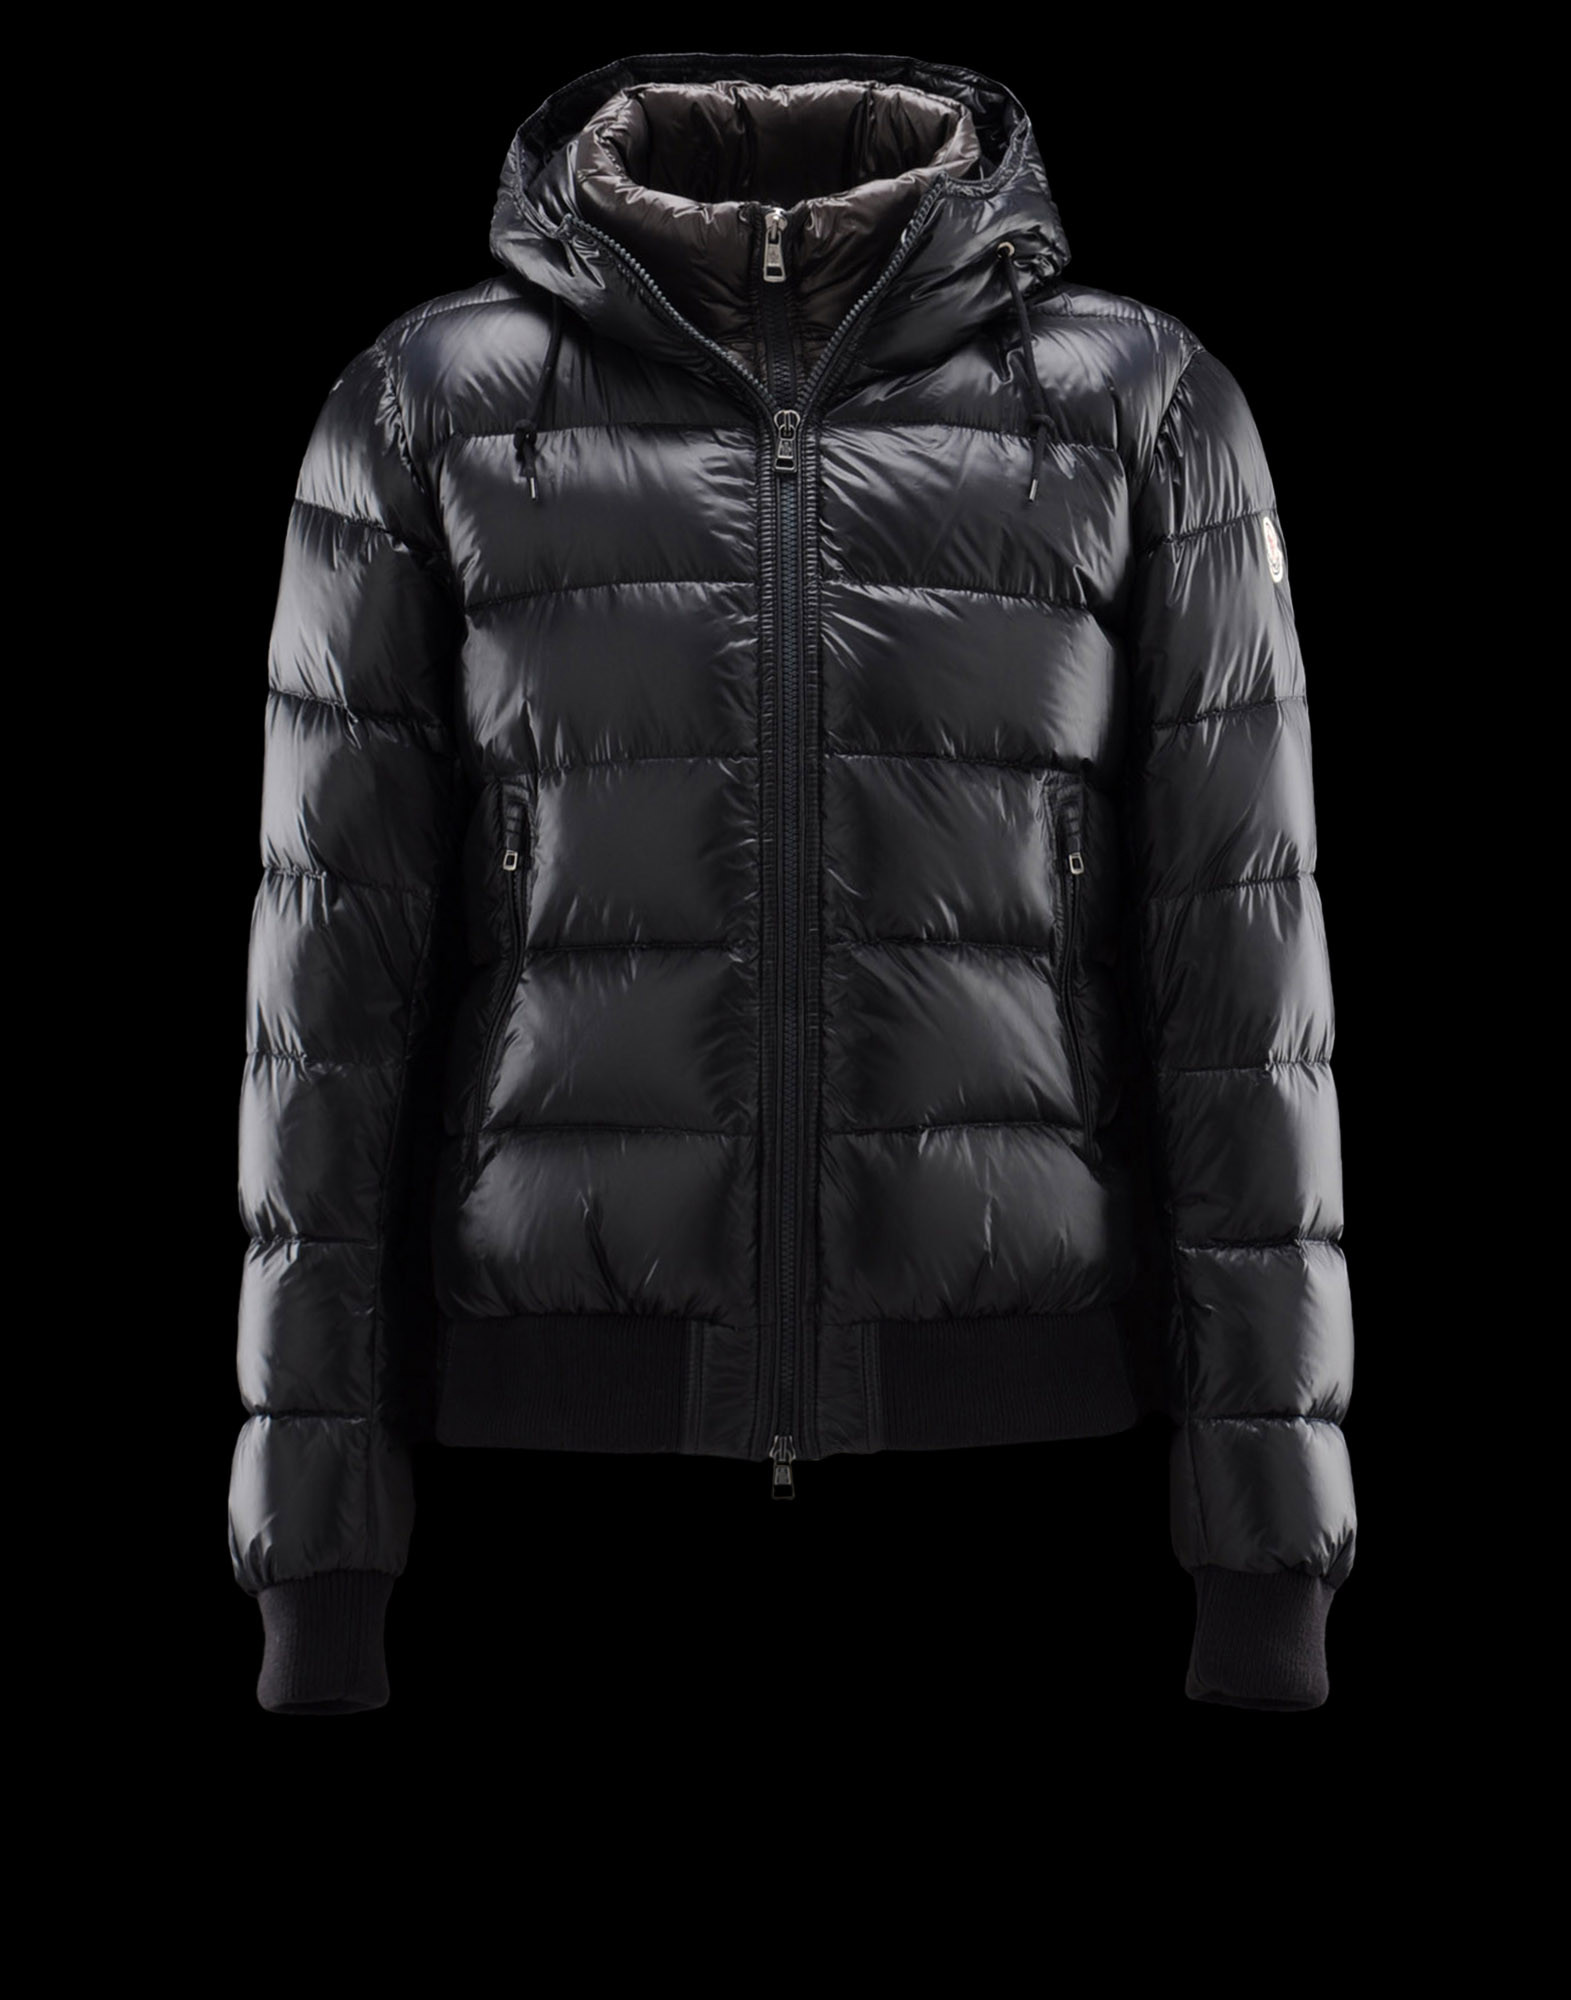 825362 Moncler Outlet Orlando Moncler Store Moncler Jacket For Women  - Australia